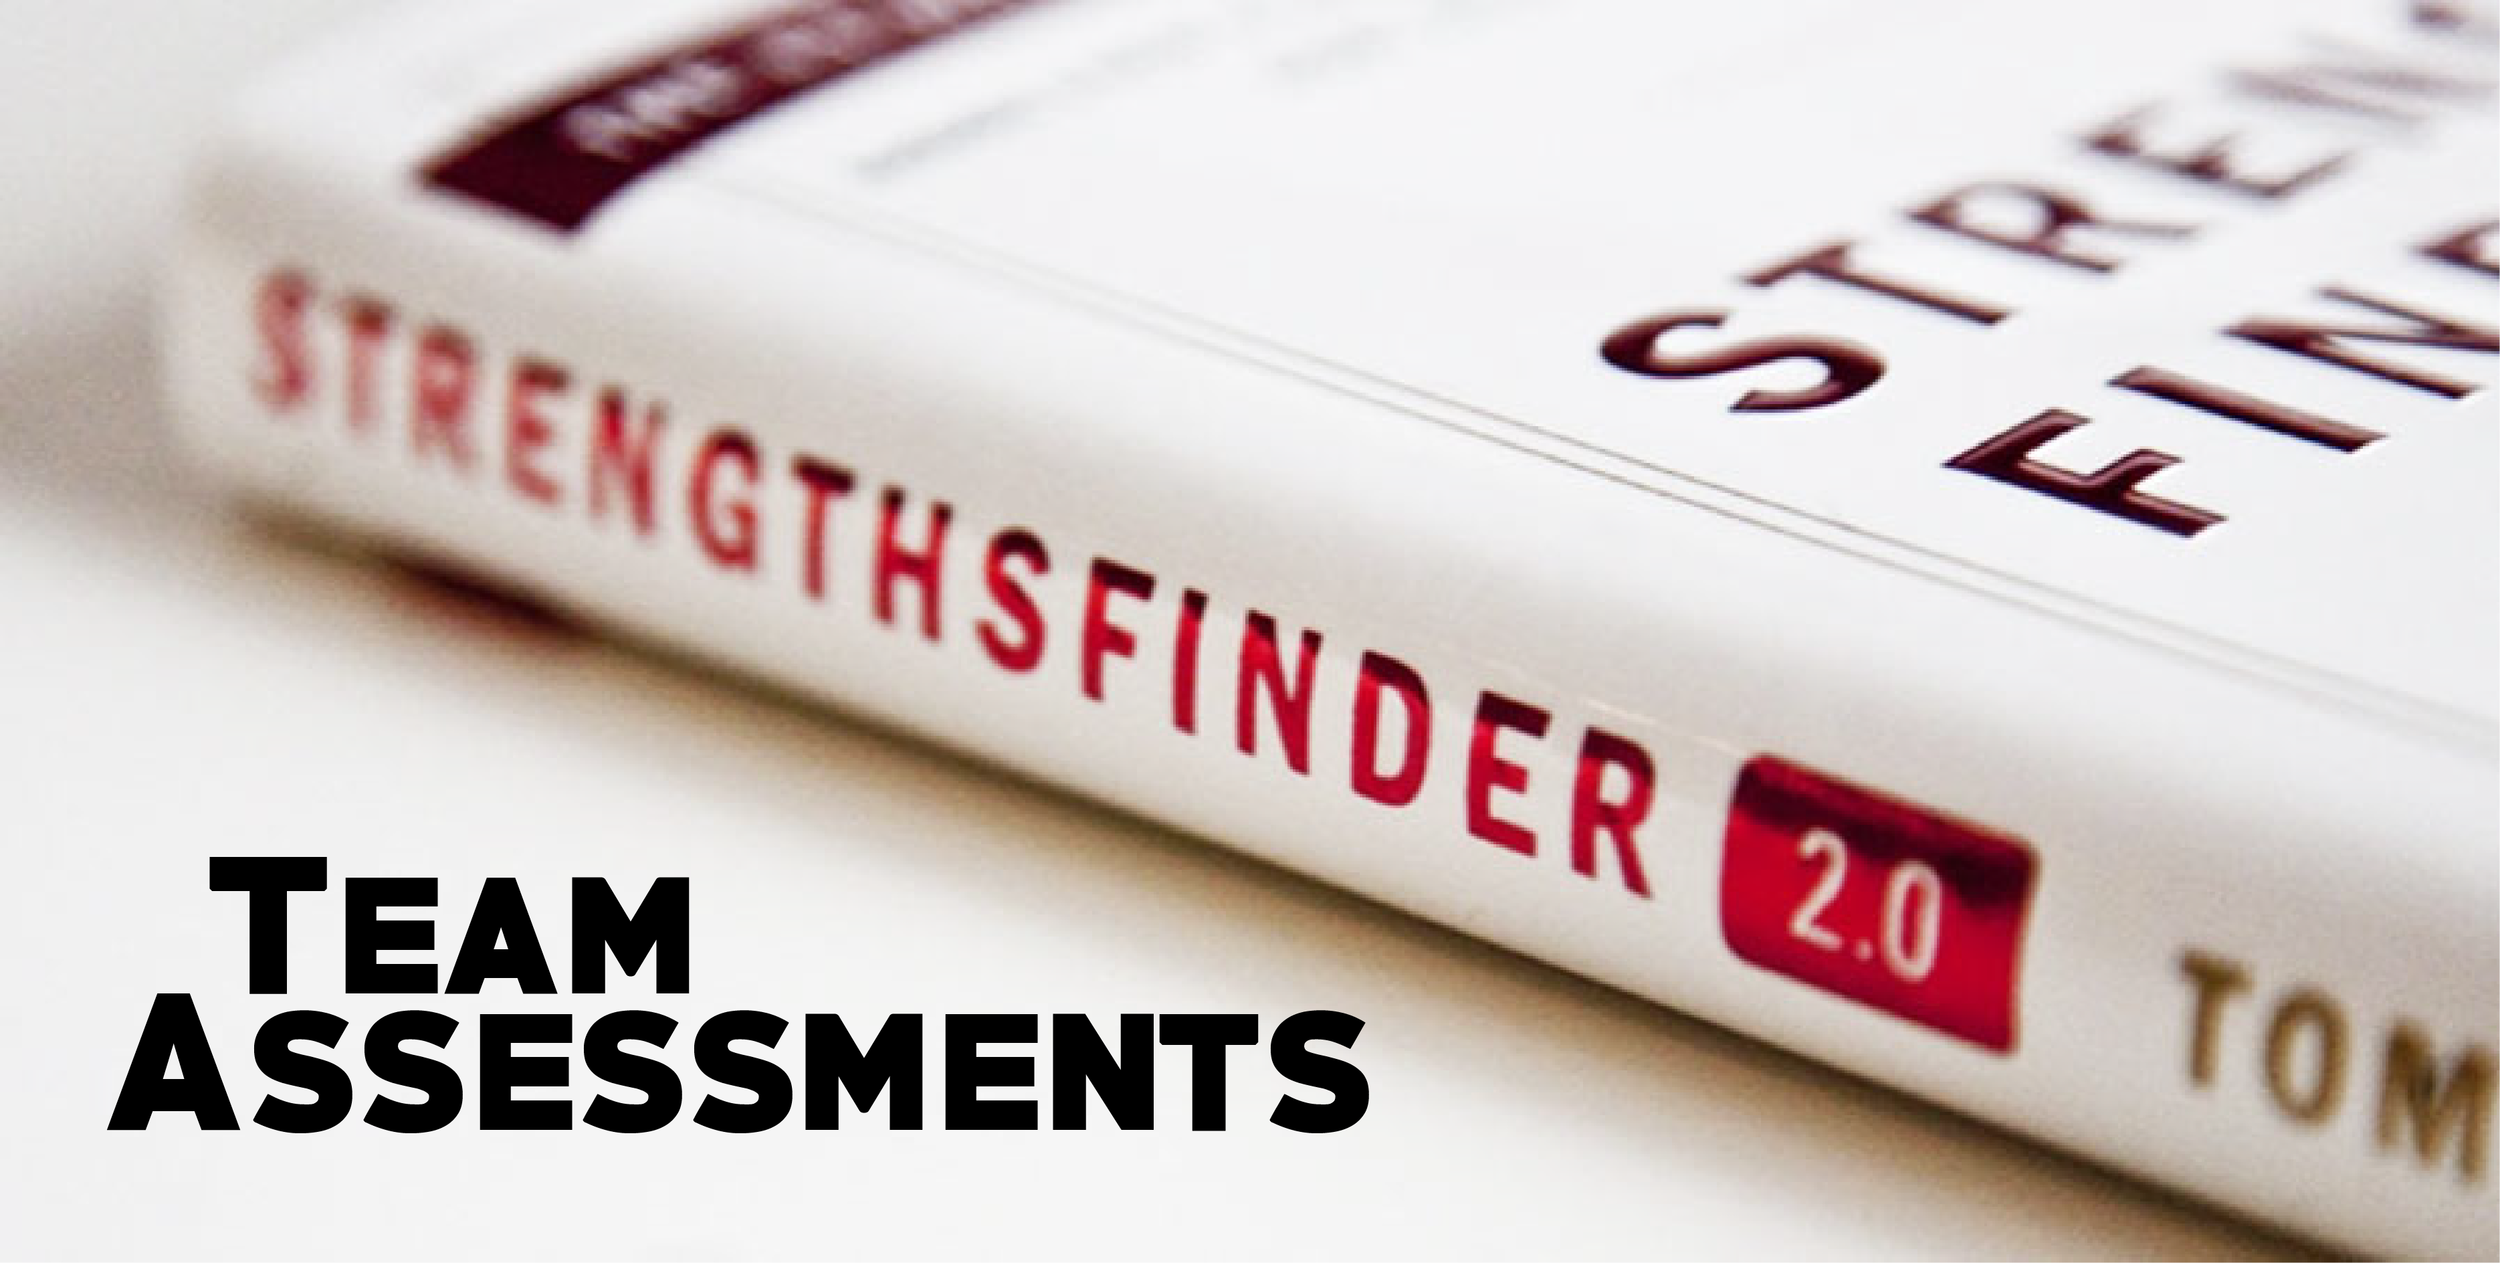 Click here to take the StrengthsFinder test. We'd love to help your team put it into practice.